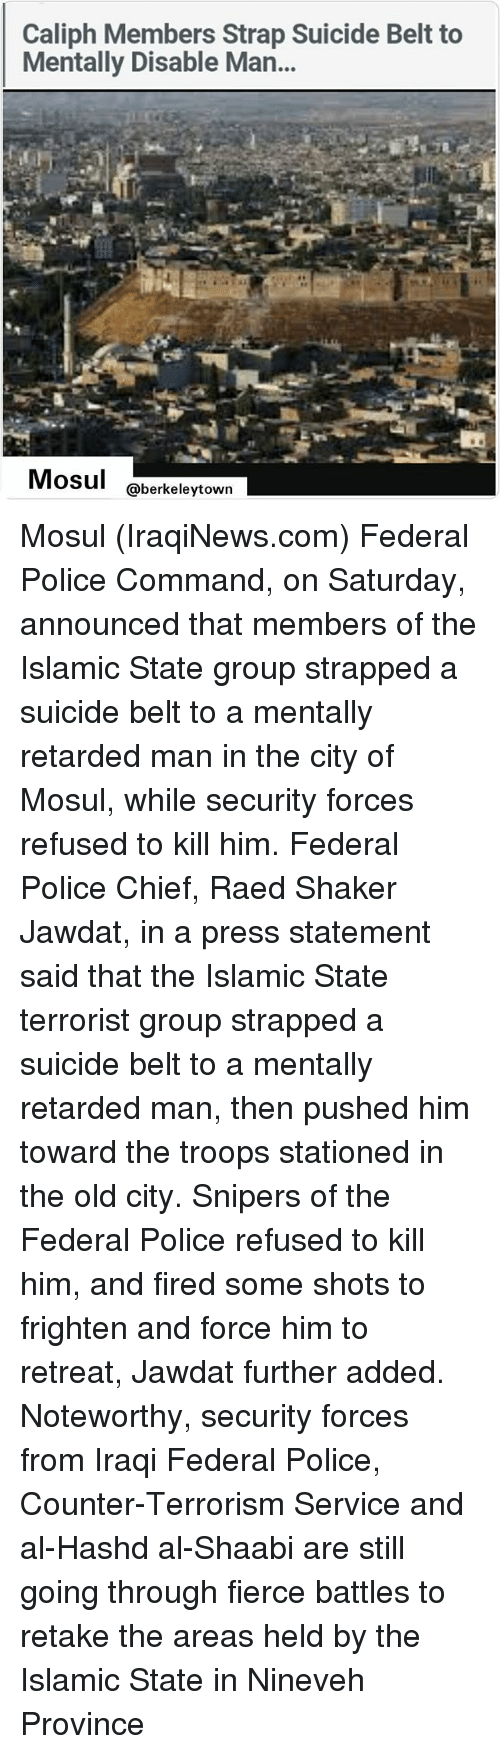 Memes, Police, and Suicide: Caliph Members Strap Suicide Belt to  Mentally Disable Man...  Mosul  @berkeley town Mosul (IraqiNews.com) Federal Police Command, on Saturday, announced that members of the Islamic State group strapped a suicide belt to a mentally retarded man in the city of Mosul, while security forces refused to kill him. Federal Police Chief, Raed Shaker Jawdat, in a press statement said that the Islamic State terrorist group strapped a suicide belt to a mentally retarded man, then pushed him toward the troops stationed in the old city. Snipers of the Federal Police refused to kill him, and fired some shots to frighten and force him to retreat, Jawdat further added. Noteworthy, security forces from Iraqi Federal Police, Counter-Terrorism Service and al-Hashd al-Shaabi are still going through fierce battles to retake the areas held by the Islamic State in Nineveh Province